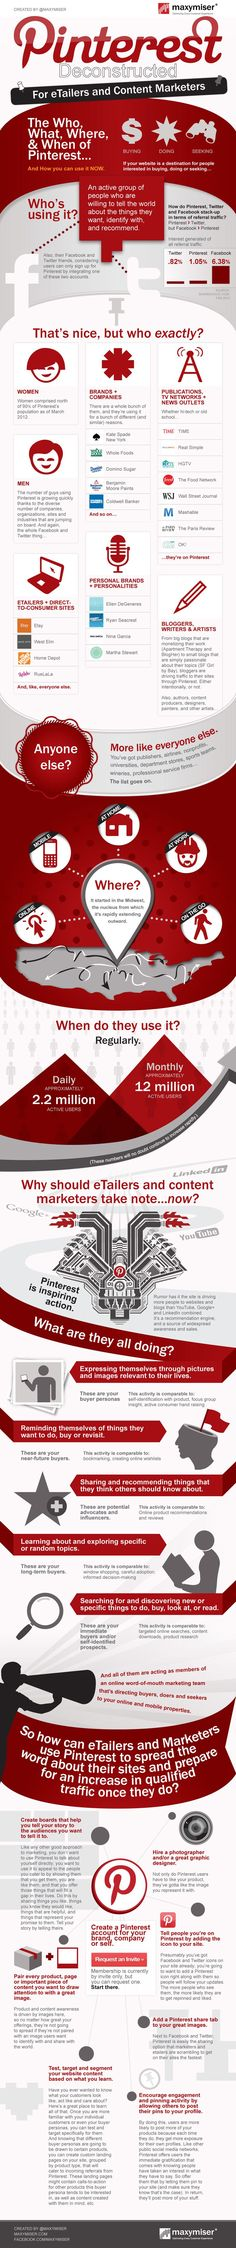 How eTailers & Marketers can use Pinterest #infographic (repinned by @ricardollera)